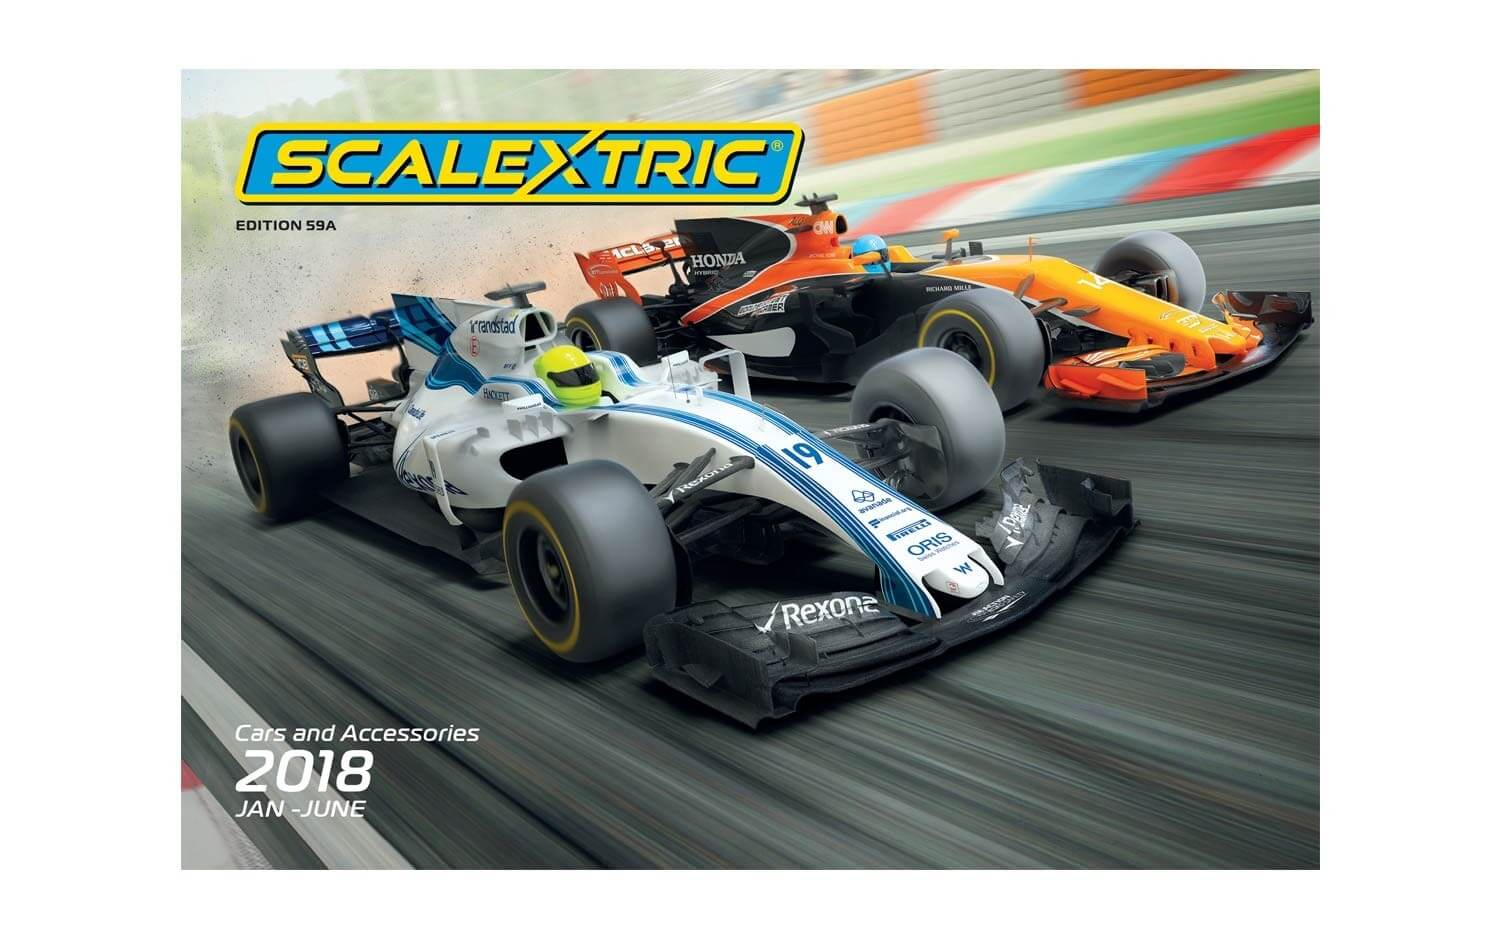 C8182 Scalextric 2018 Product Catalog January-June, Edition 59A